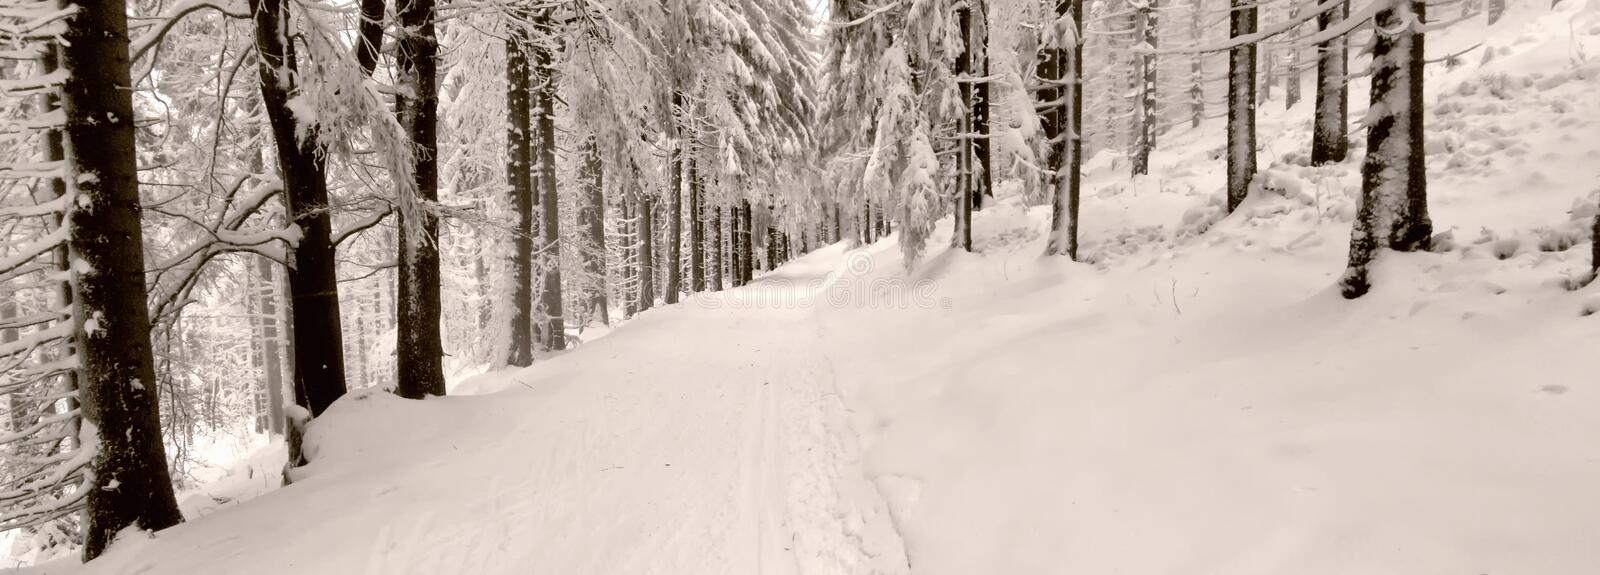 Cross country track in the forest at winter daylight stock images